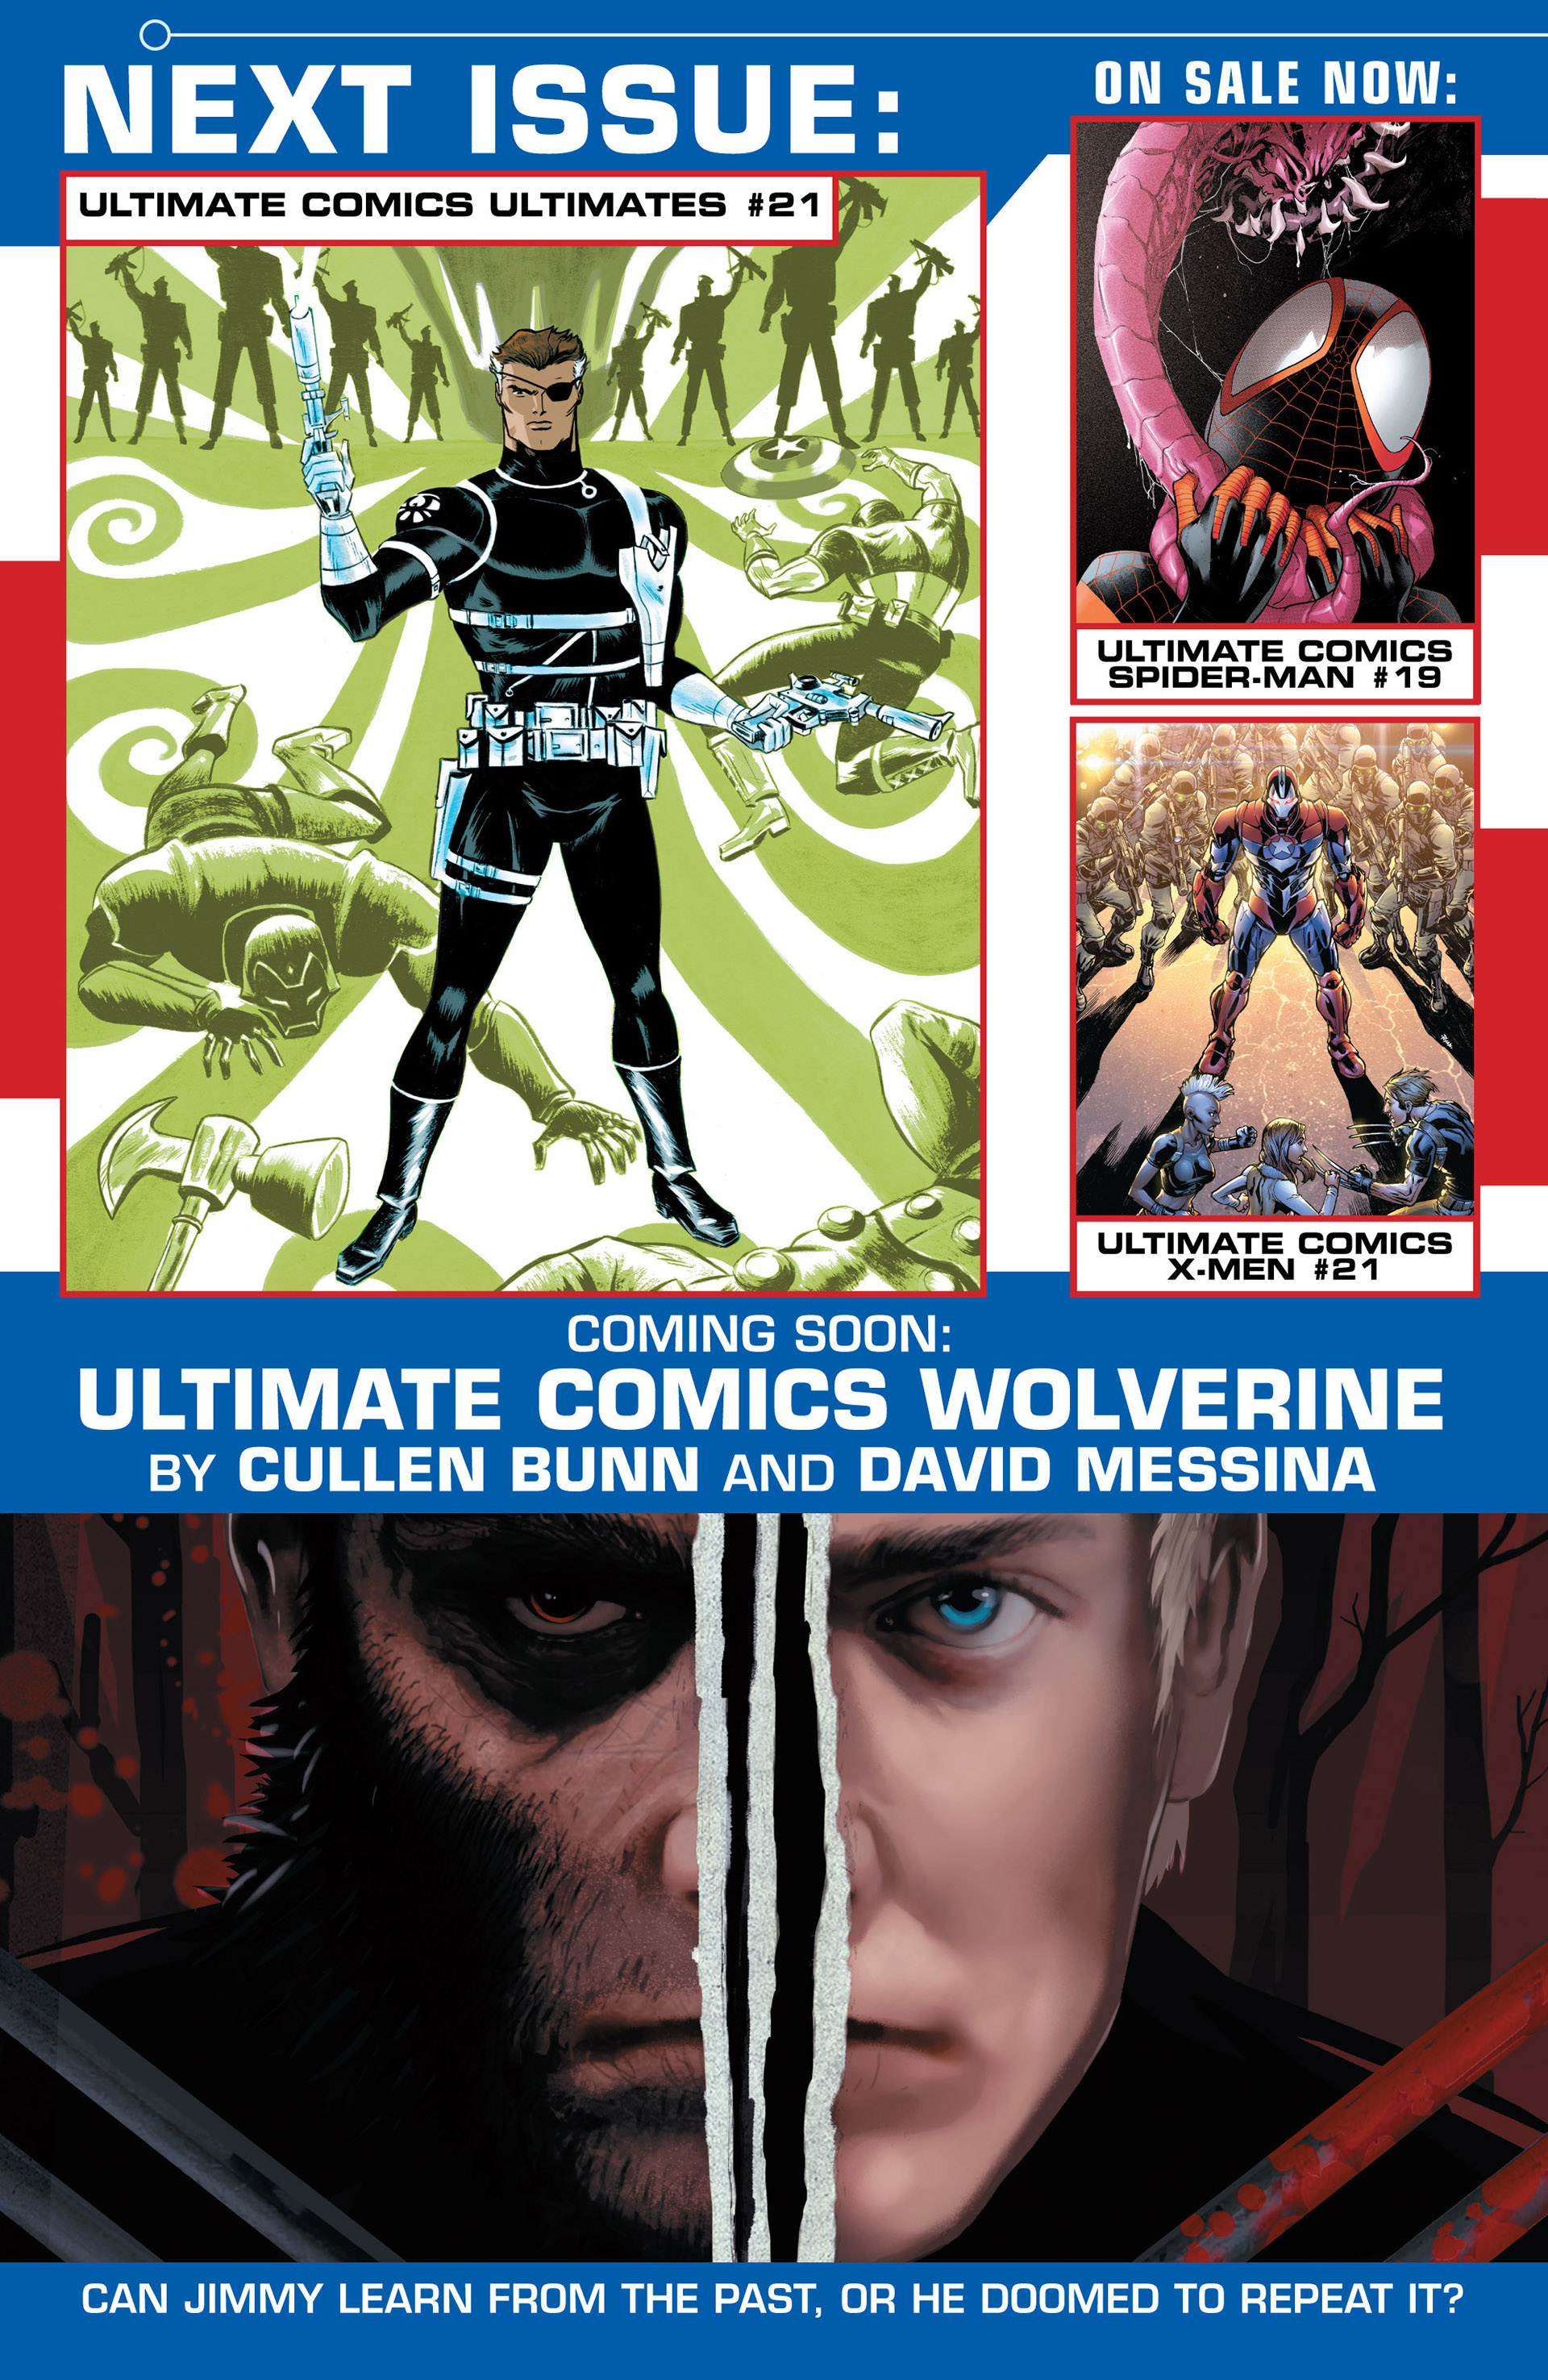 Read online Ultimate Comics Ultimates comic -  Issue #20 - 23